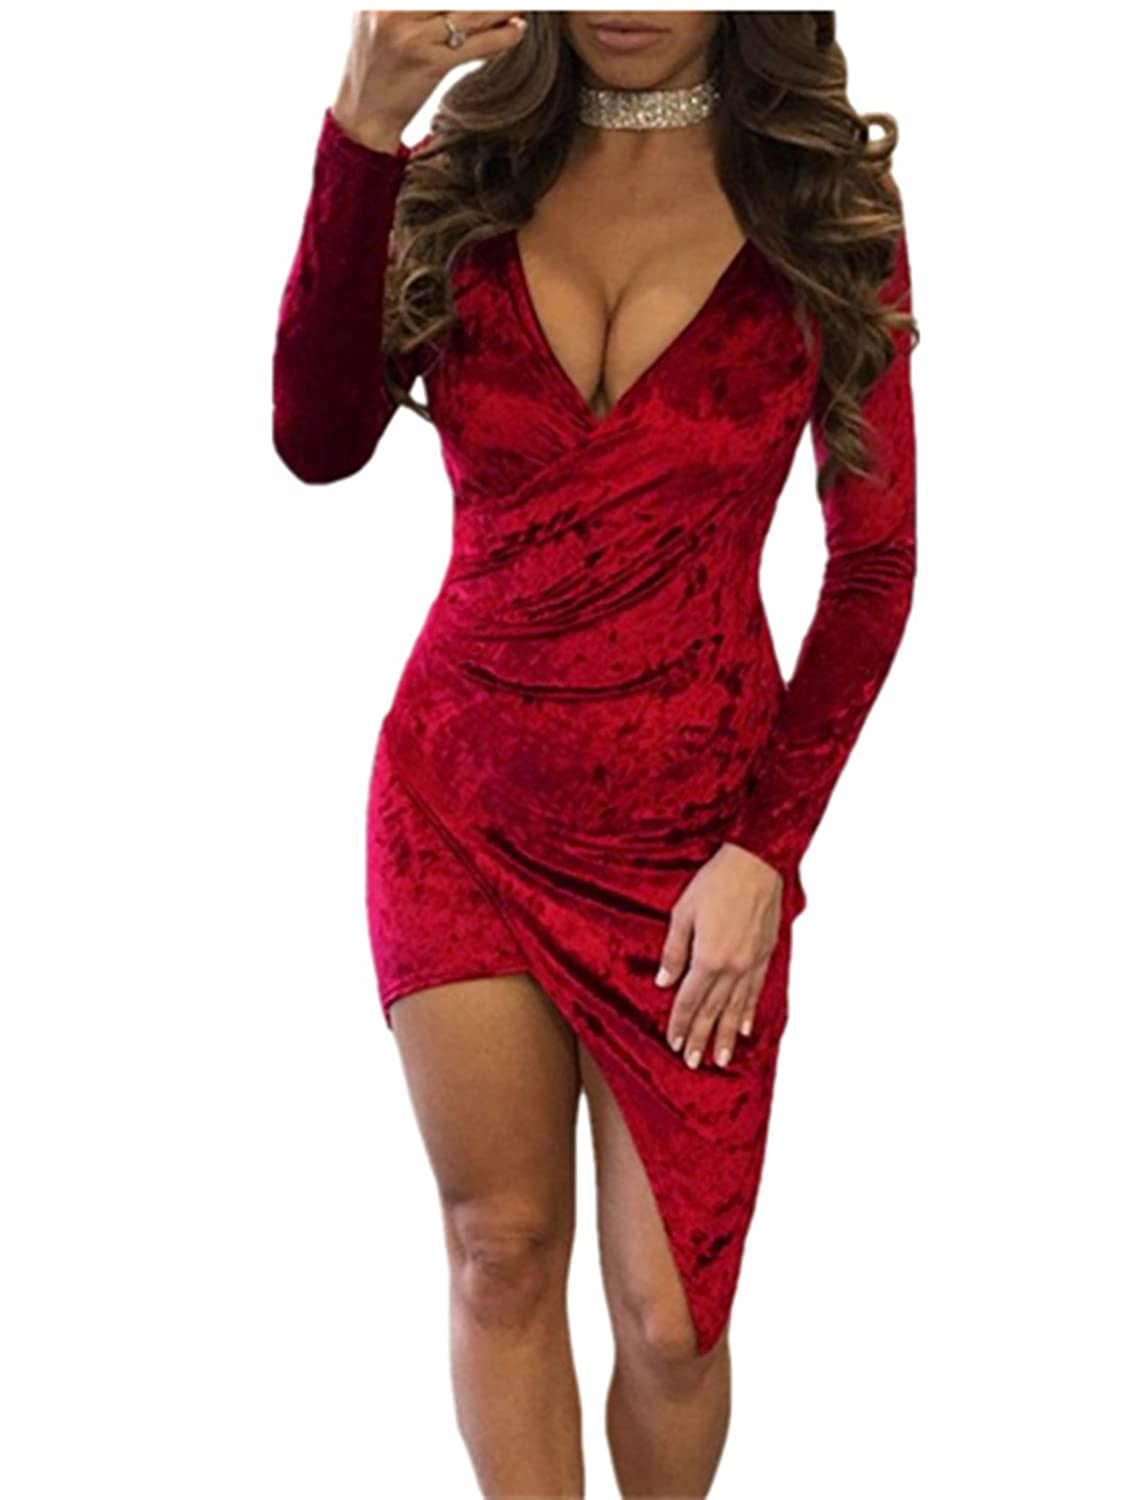 Mrs Spicy 2 Colors Crushed Velvet Asymmetric Wrap Bodycon Dress S,M,L